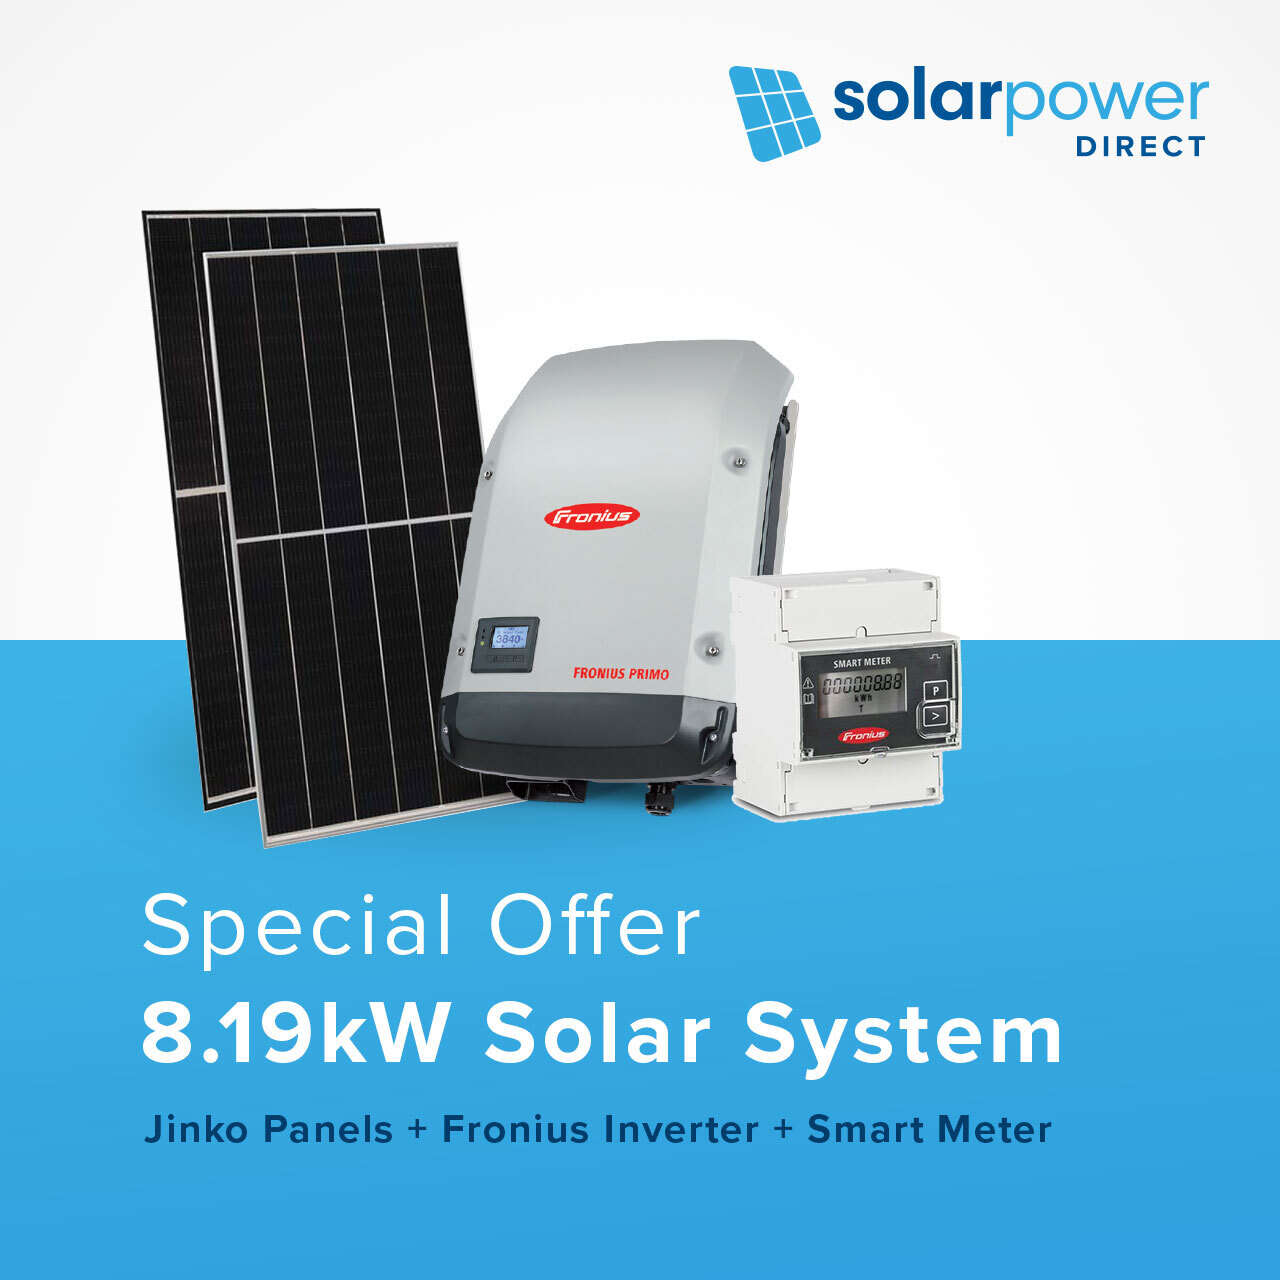 8.19kW Solar System for $6,199